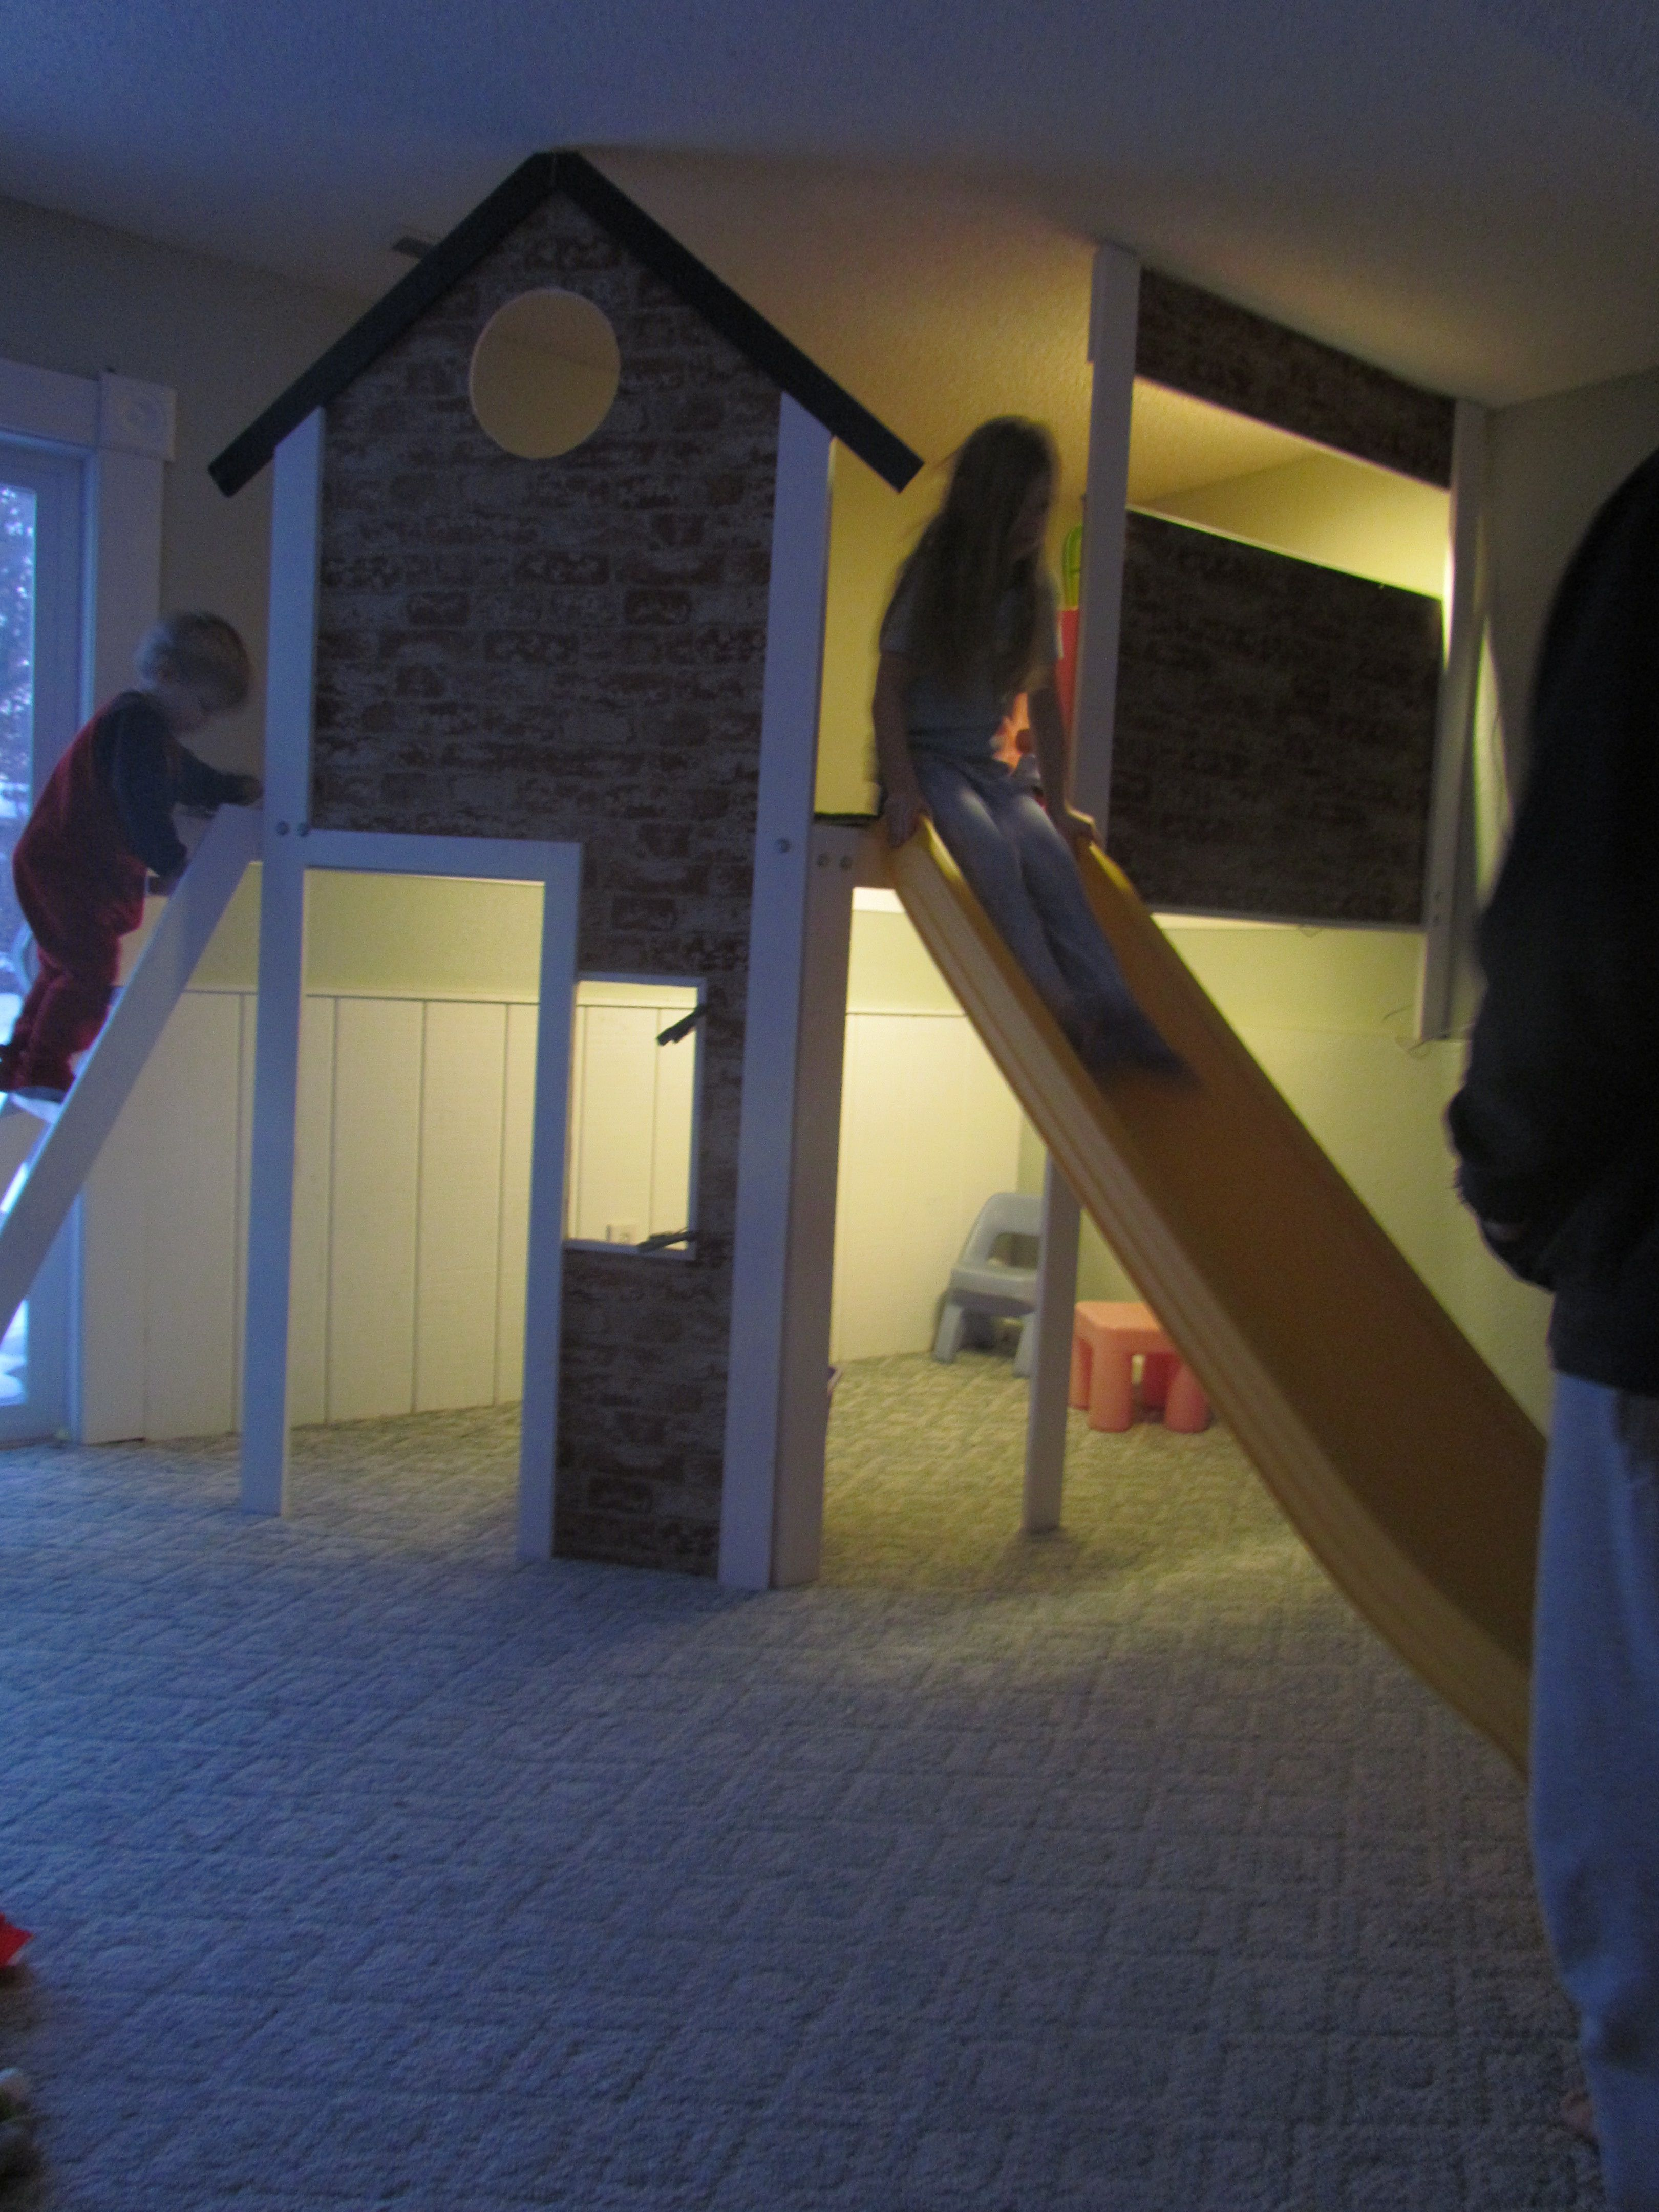 Home daycare design-ideen i built an uxu  story indoor playhouse with a slide in our play